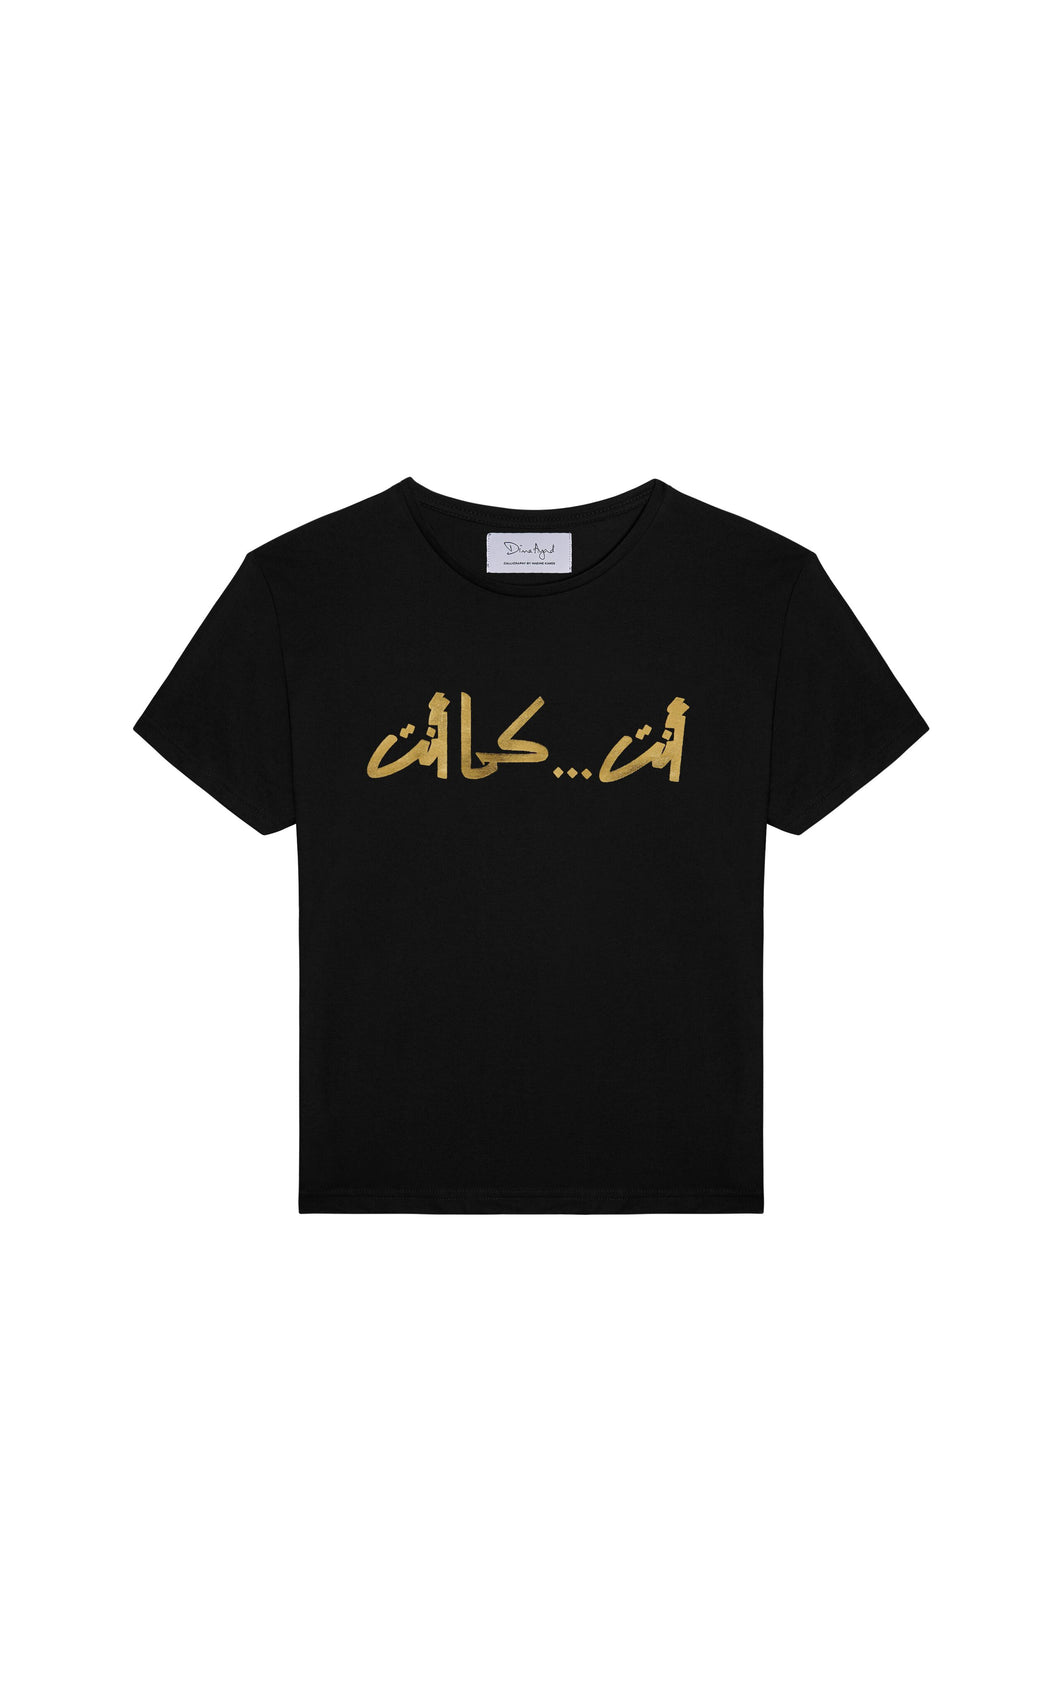 YOU...AS IS Calligraphy by Nadine Kanso Black T-shirt with Gold Text, Arabic